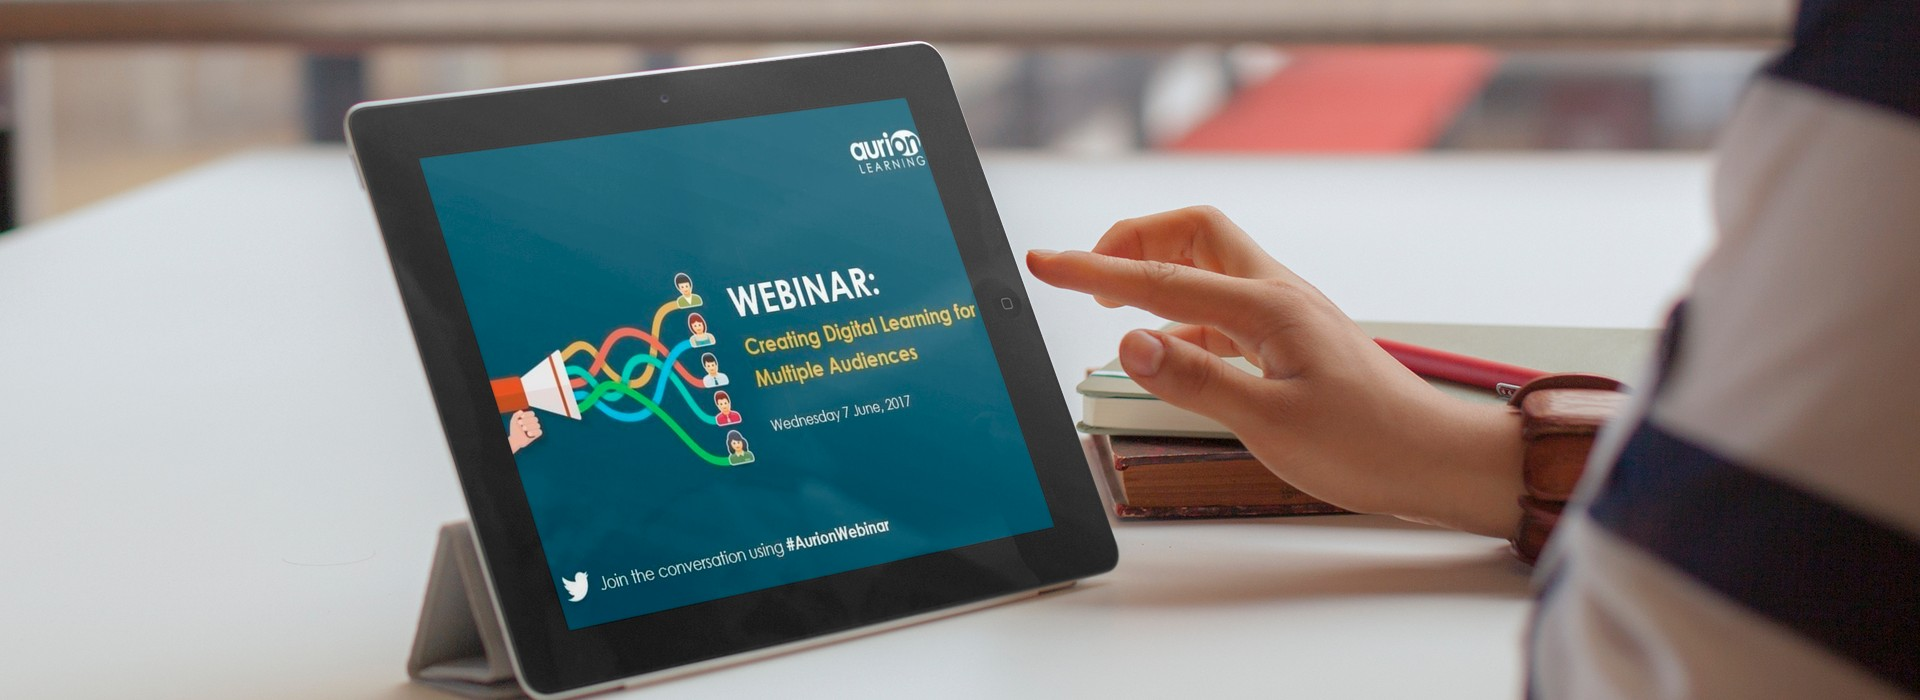 creating digital learning for multiple audiences webinar embedded in ipad